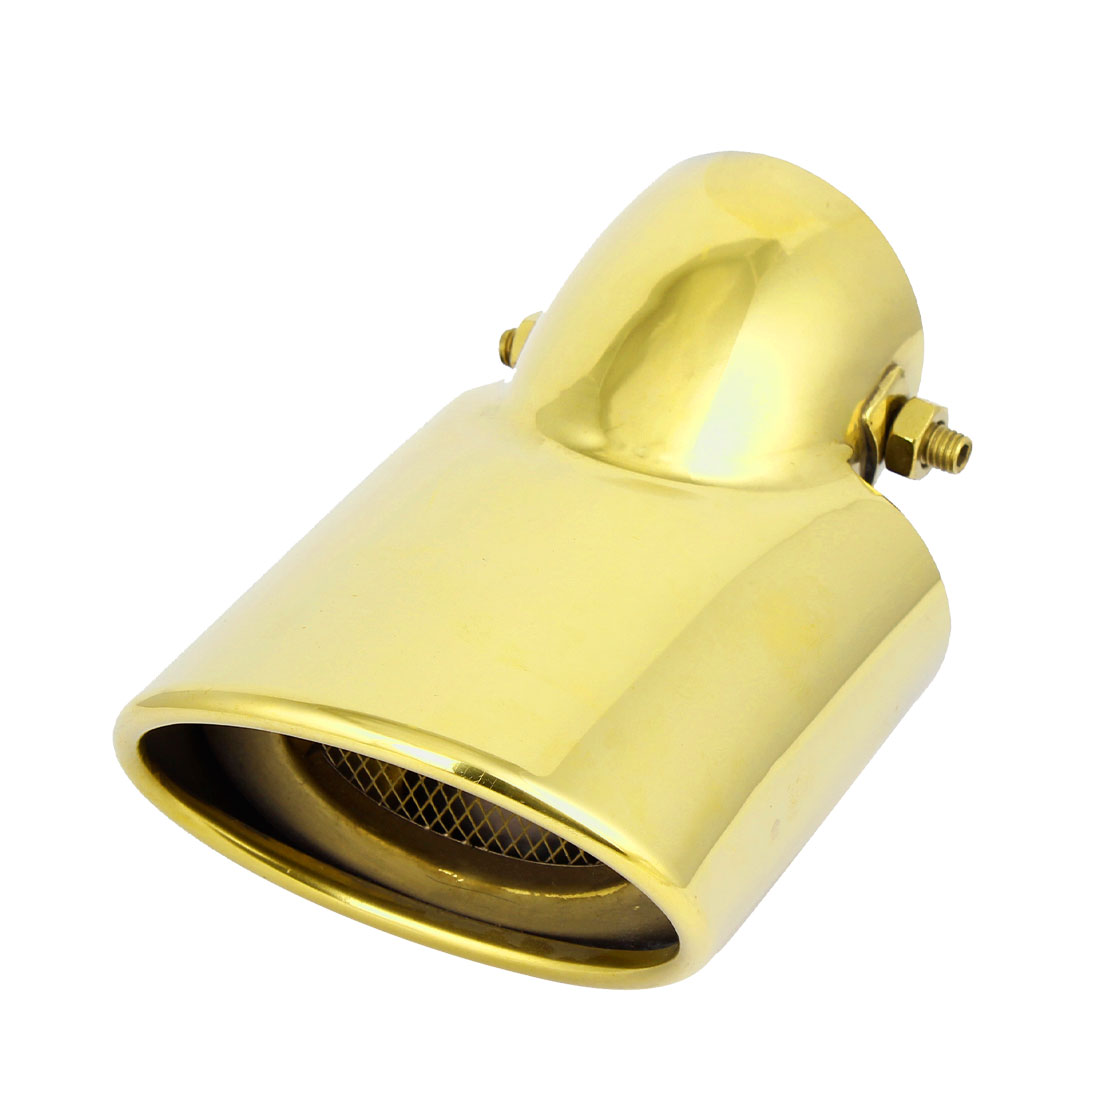 10.5cm x 8cm Oval Outlet Rolled Exhaust Muffler Tip Gold Tone for Chevrolet Cruze